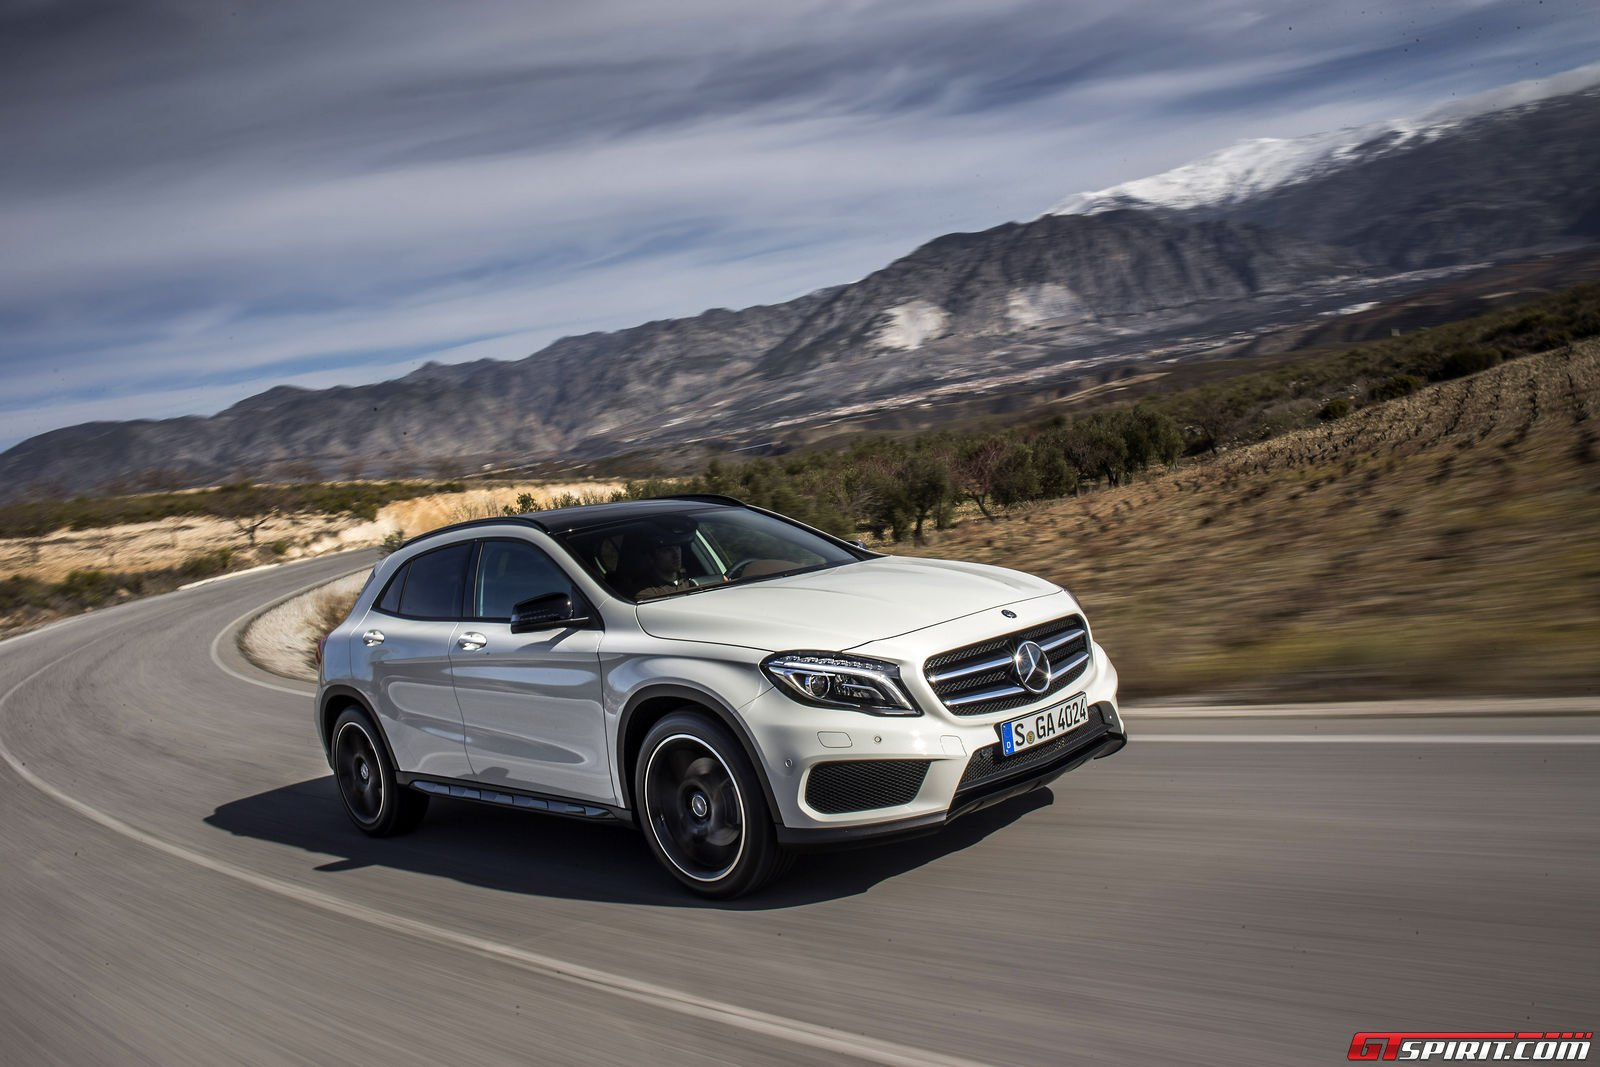 Road test 2015 mercedes benz gla 45 amg edition 1 review for Mercedes benz gla class 250